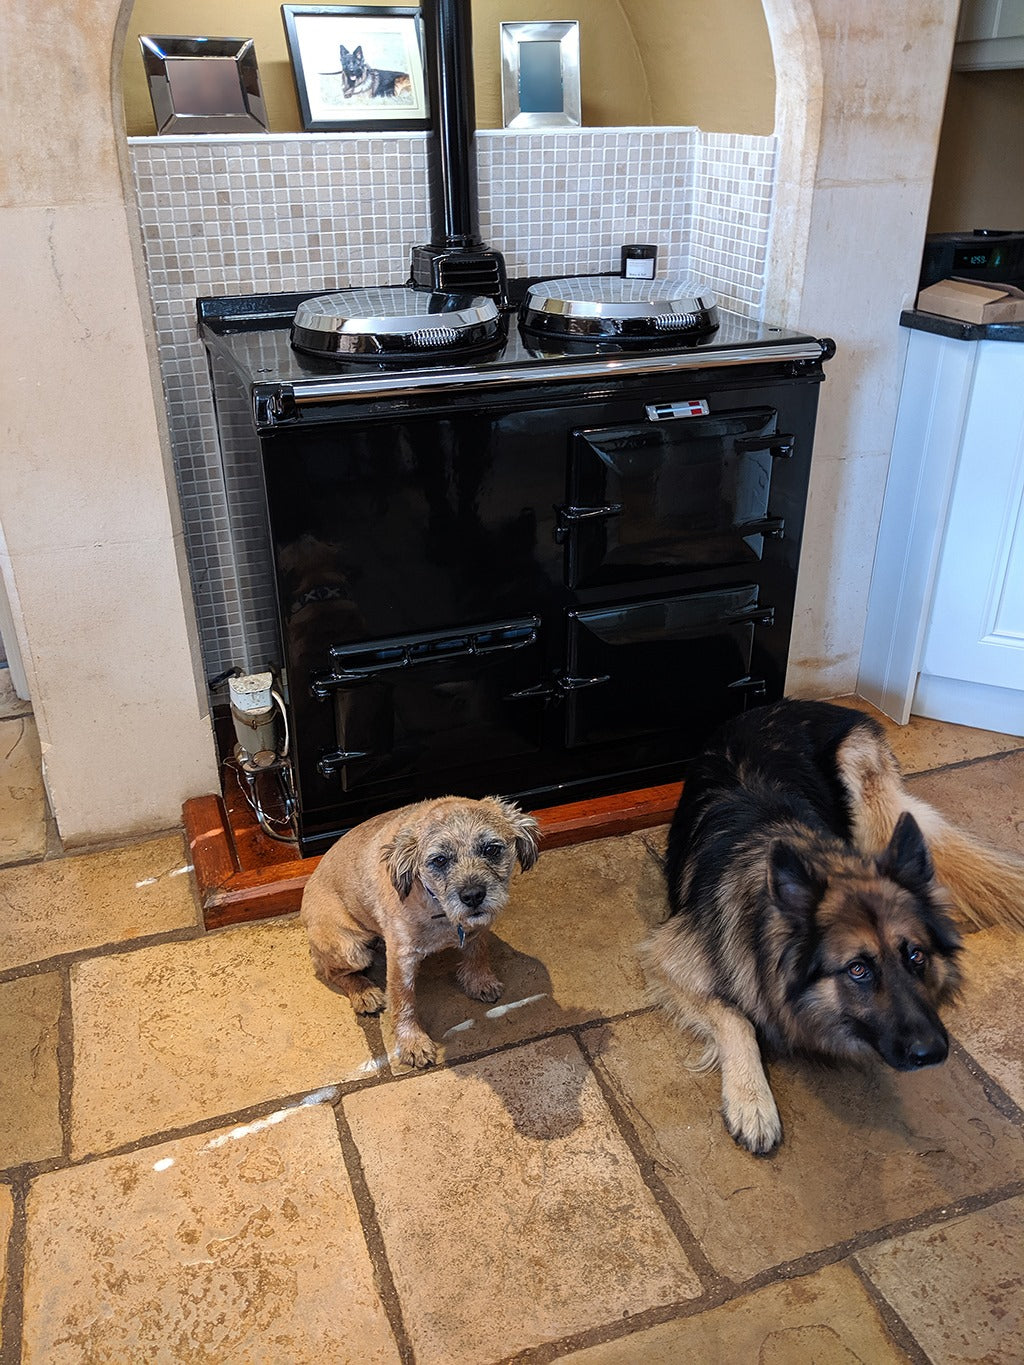 Black Aga range cooker in kitchen with two dogs lying in front